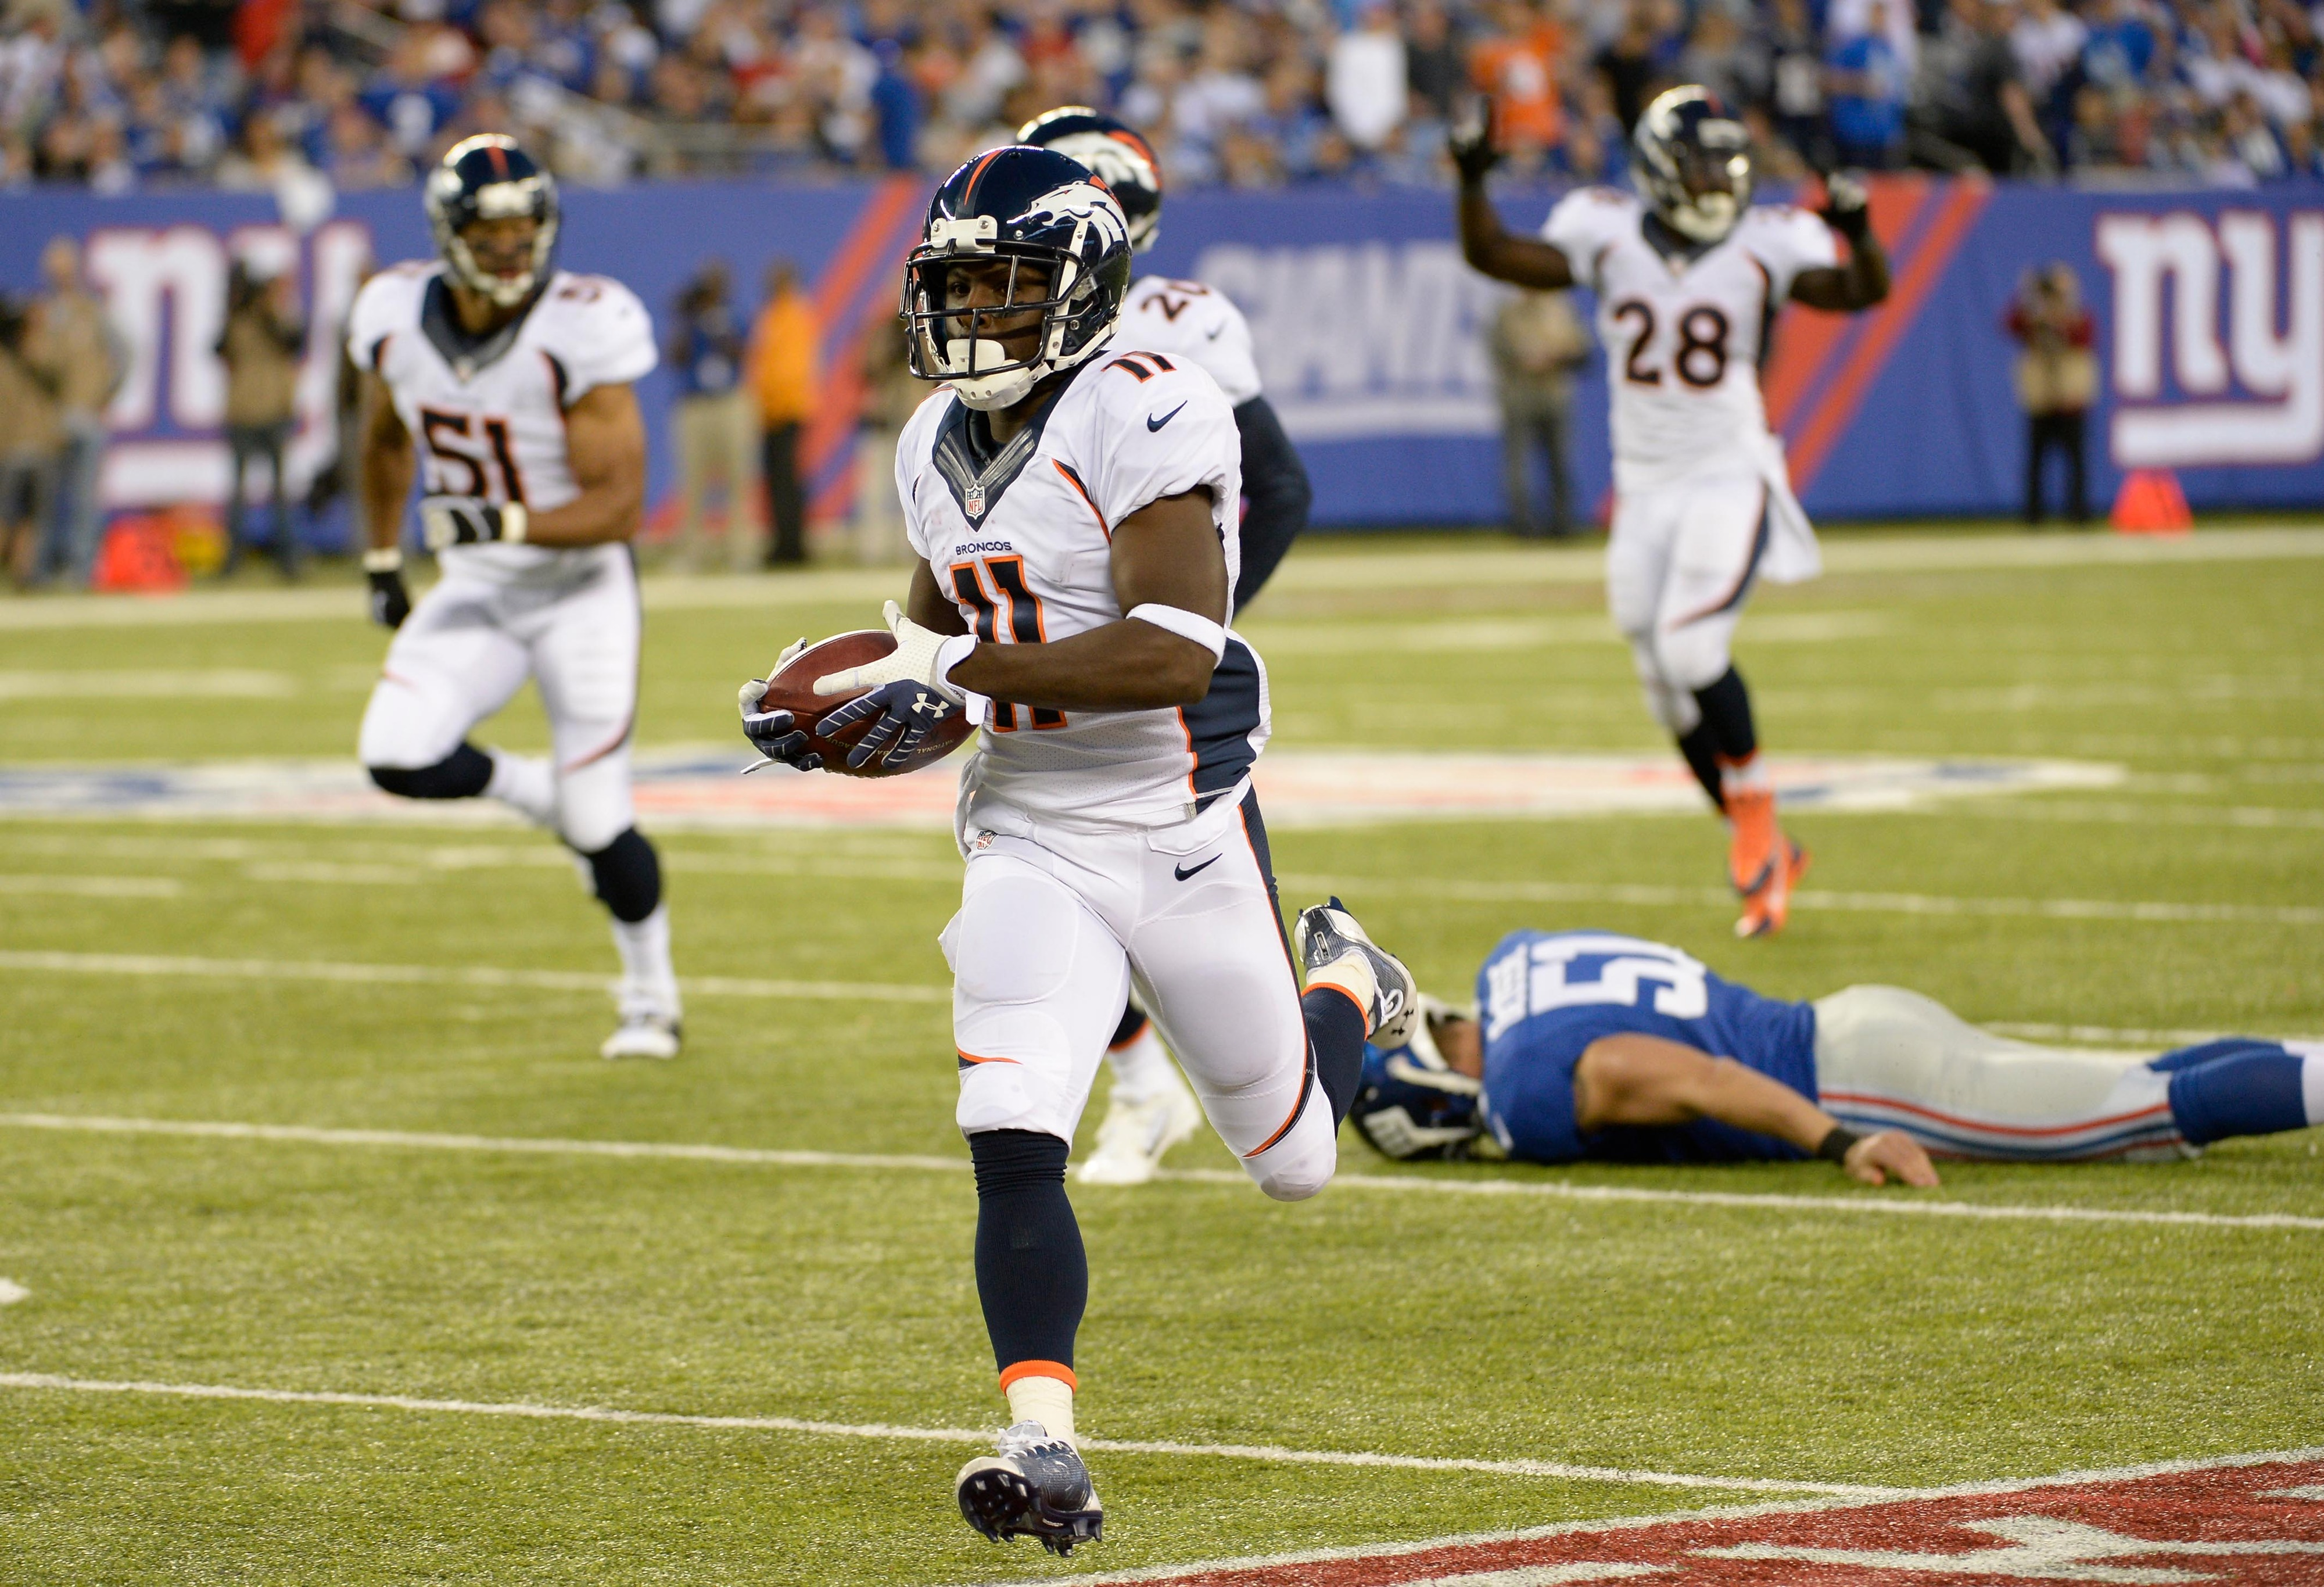 KR/PR Trindon Holliday came to terms with the Giants Monday night